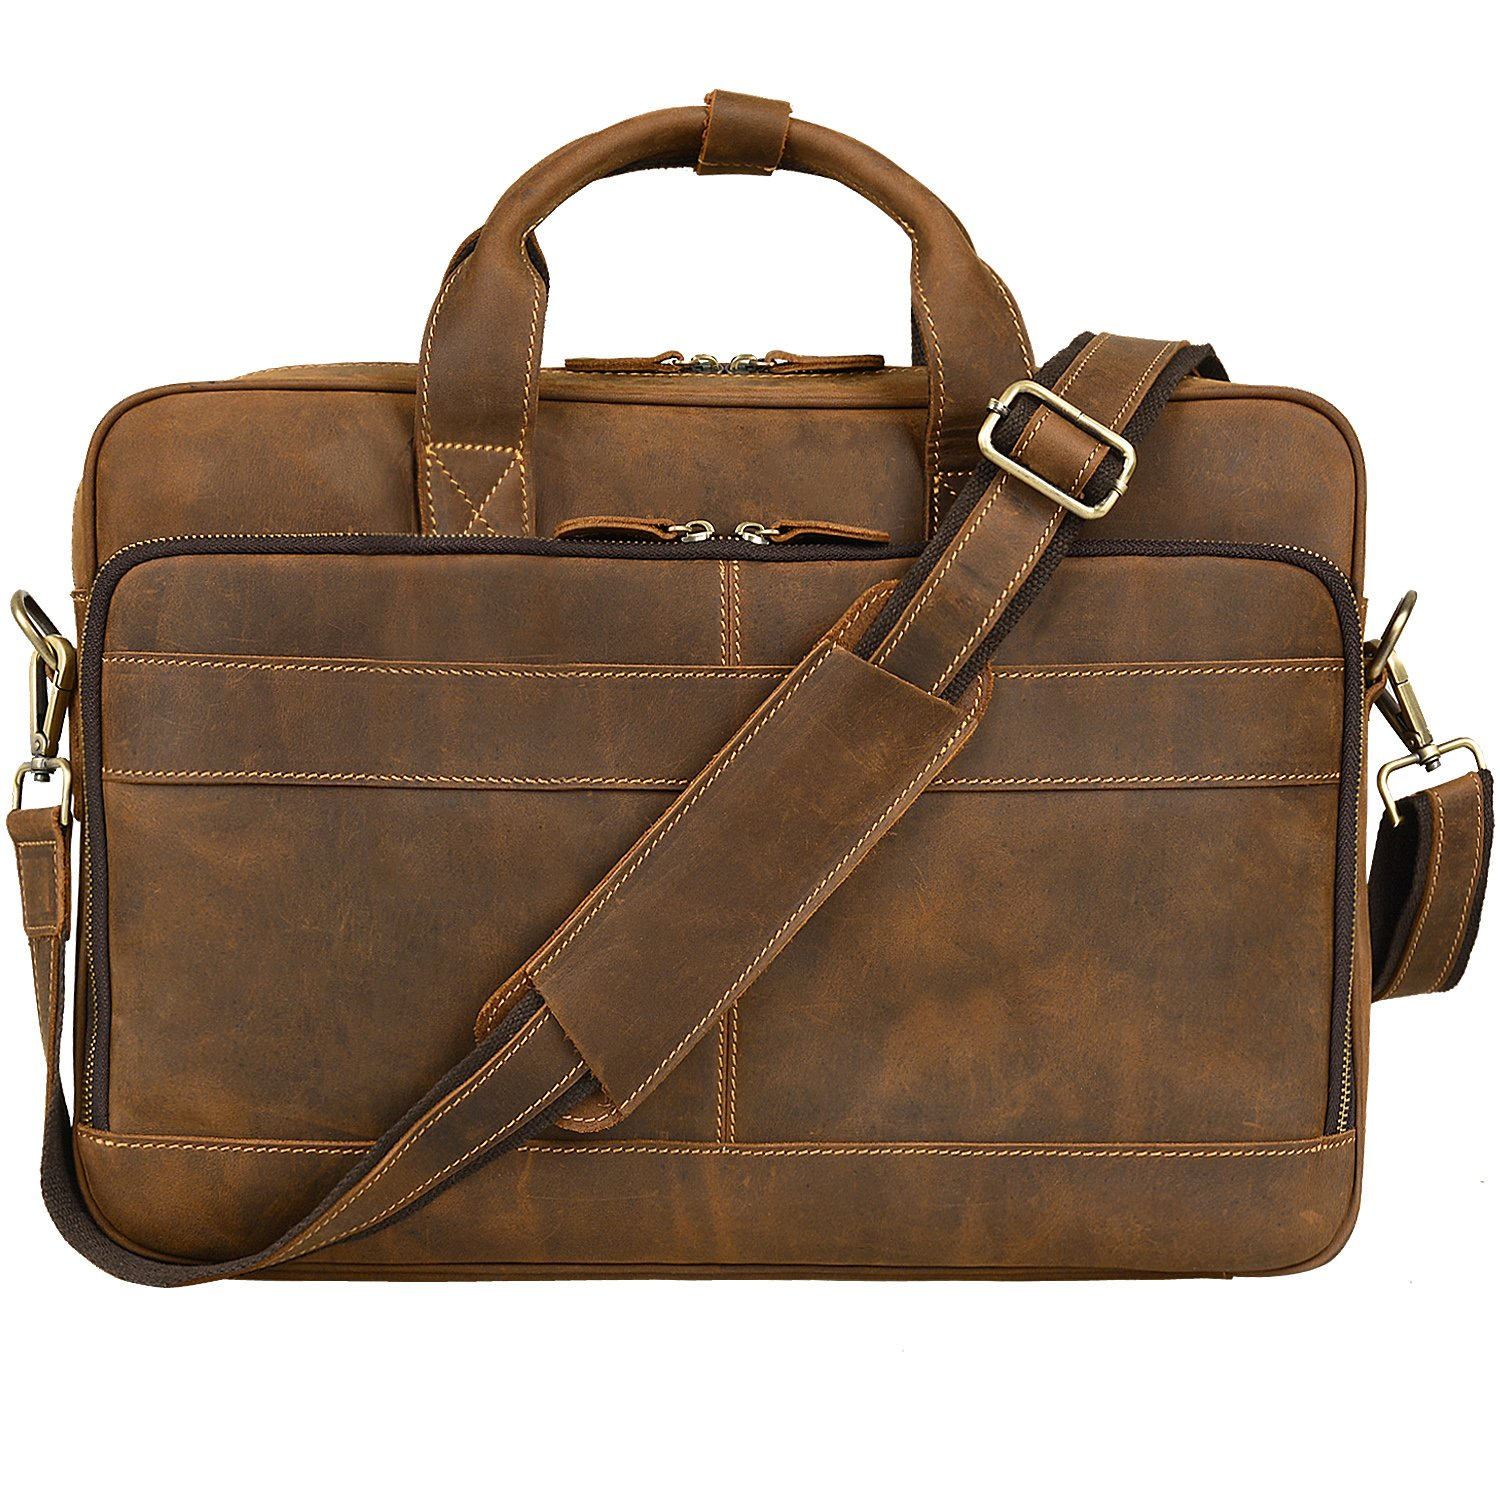 Jack&Chris Men's Genuine Leather Briefcase Messenger Bag Attache Case 14″ Laptop, MB005B